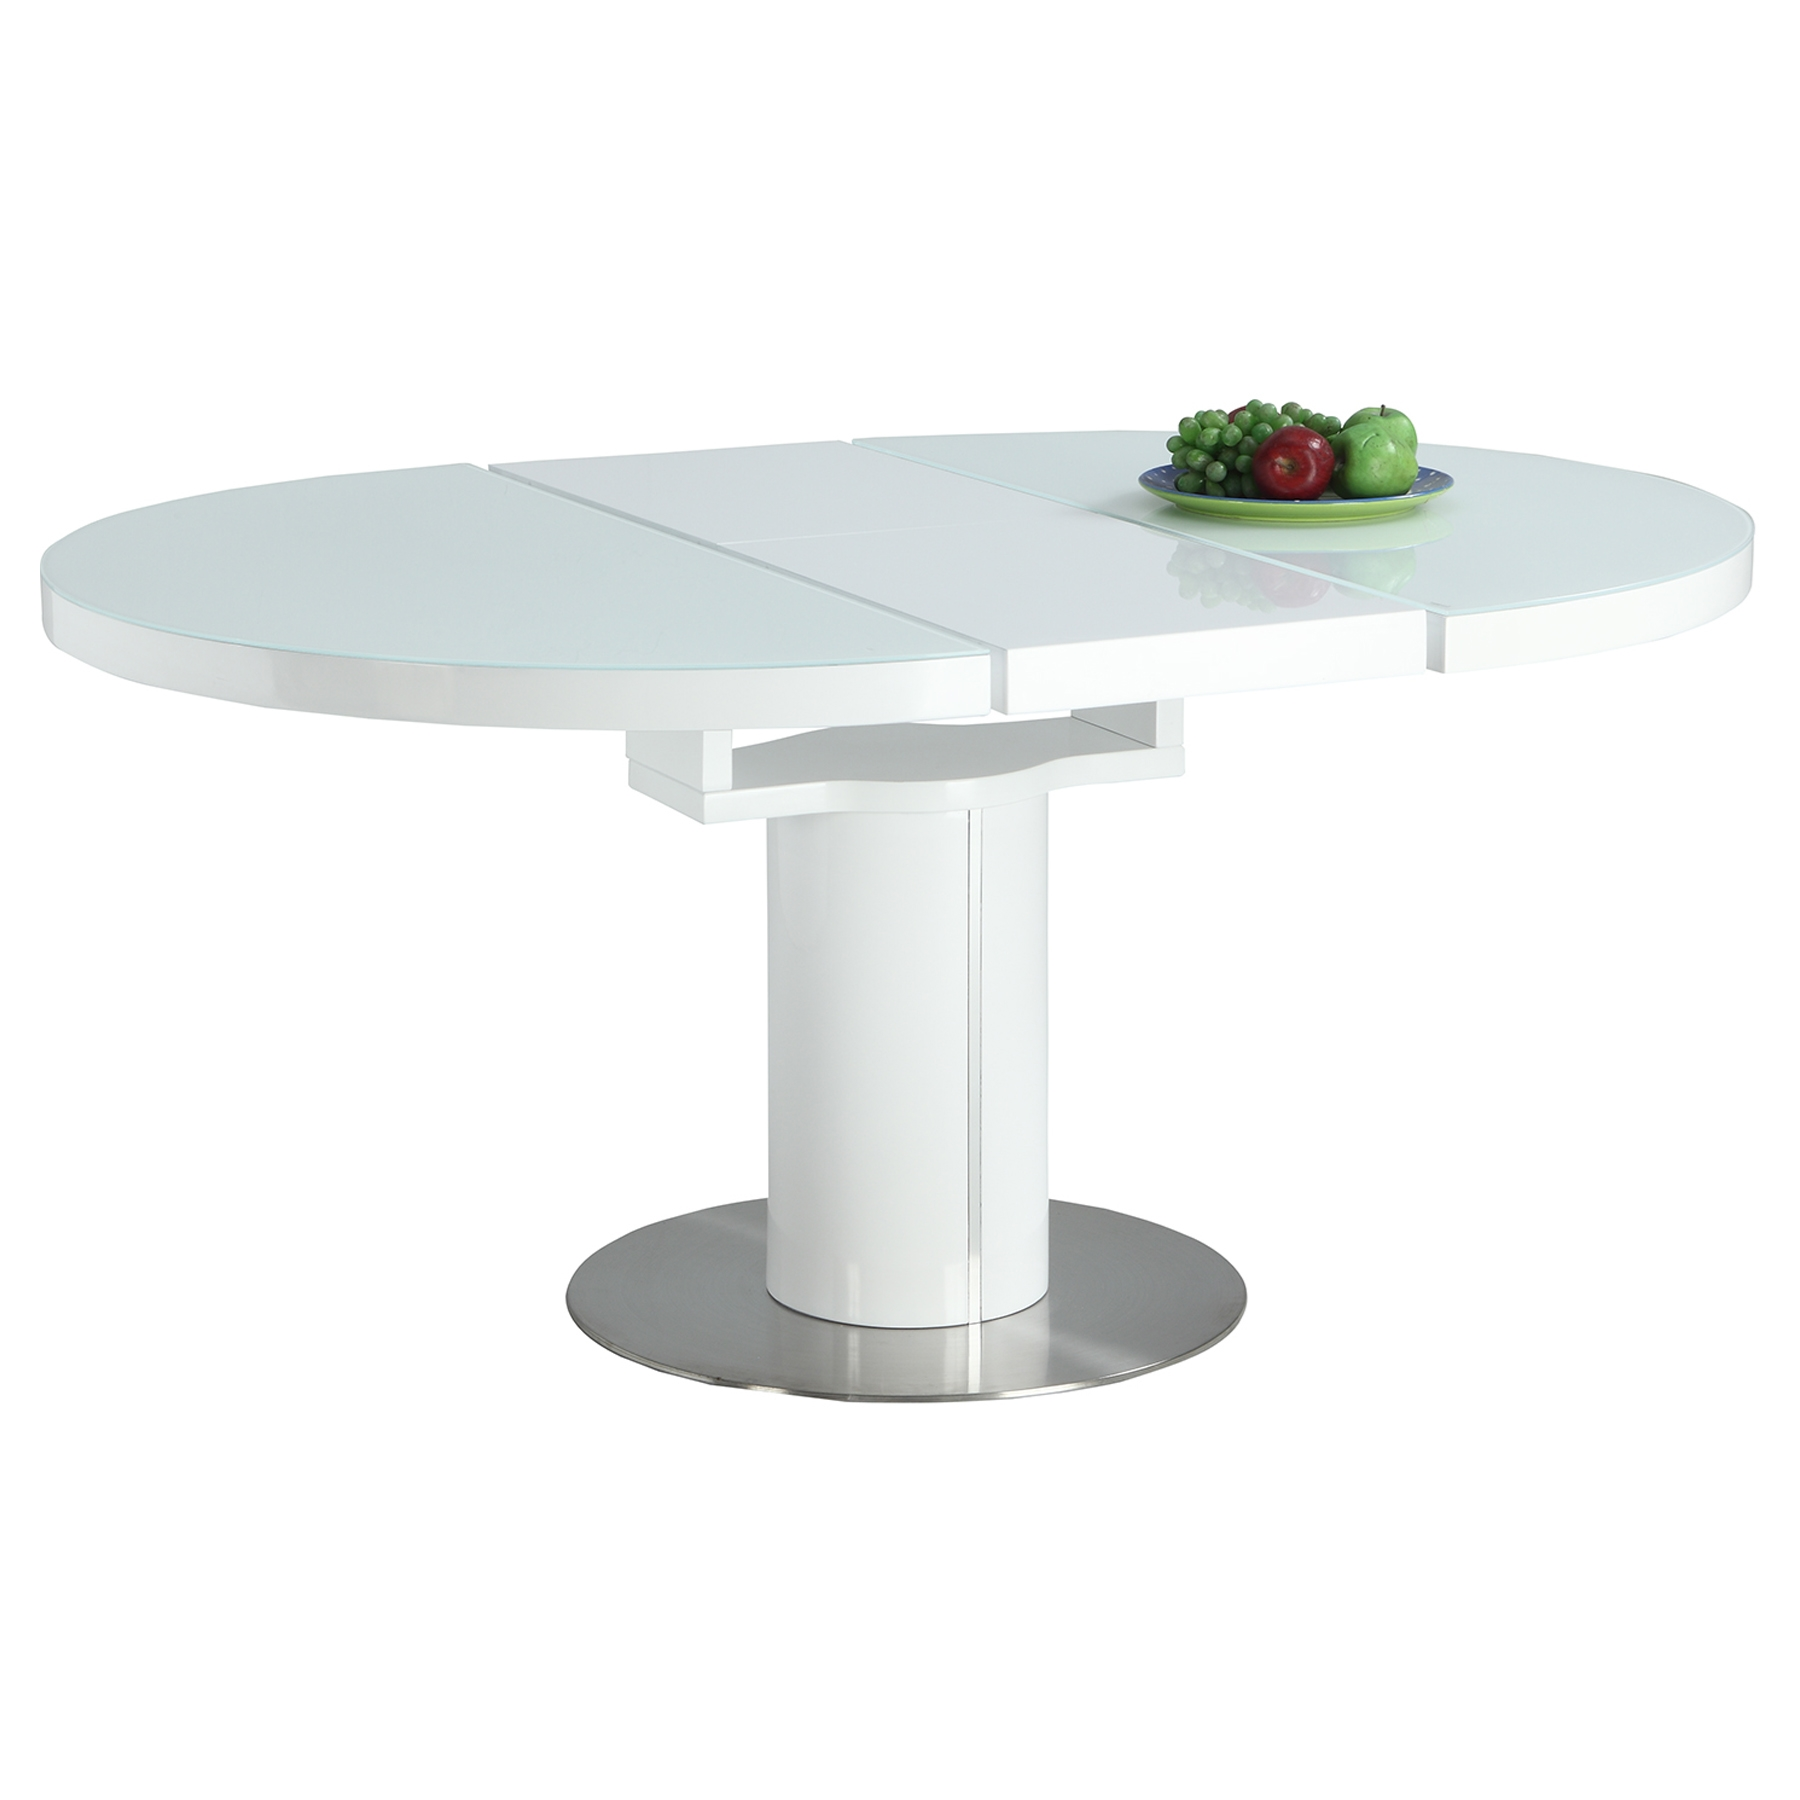 Nora Dining Table - Pedestal, Gloss White - CI-NORA-DT-WHT